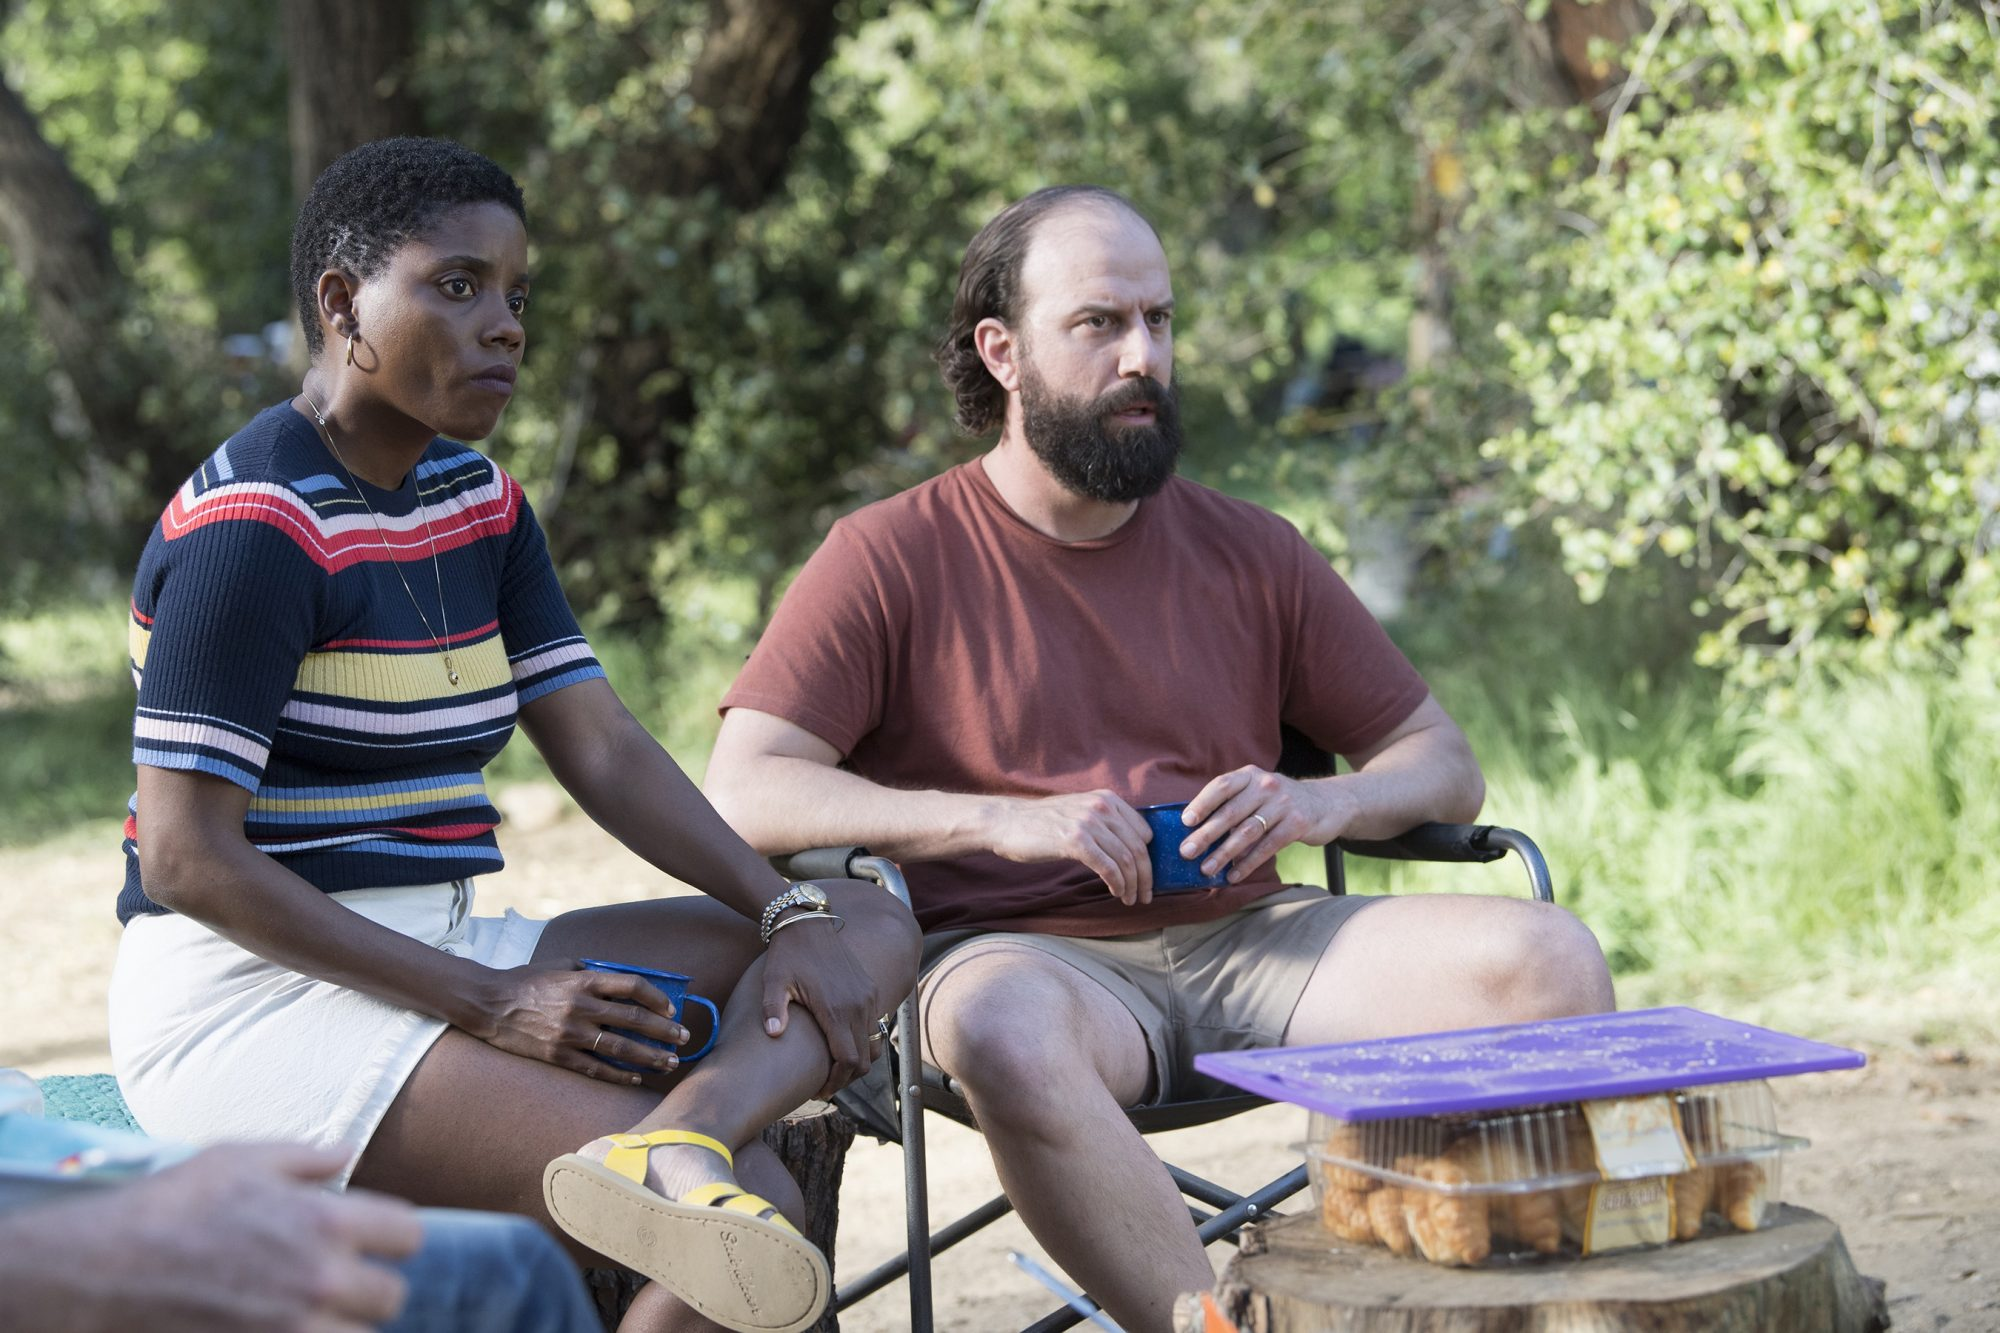 Nina-Joy (Janicza Bravo) and George (Brett Gelman)